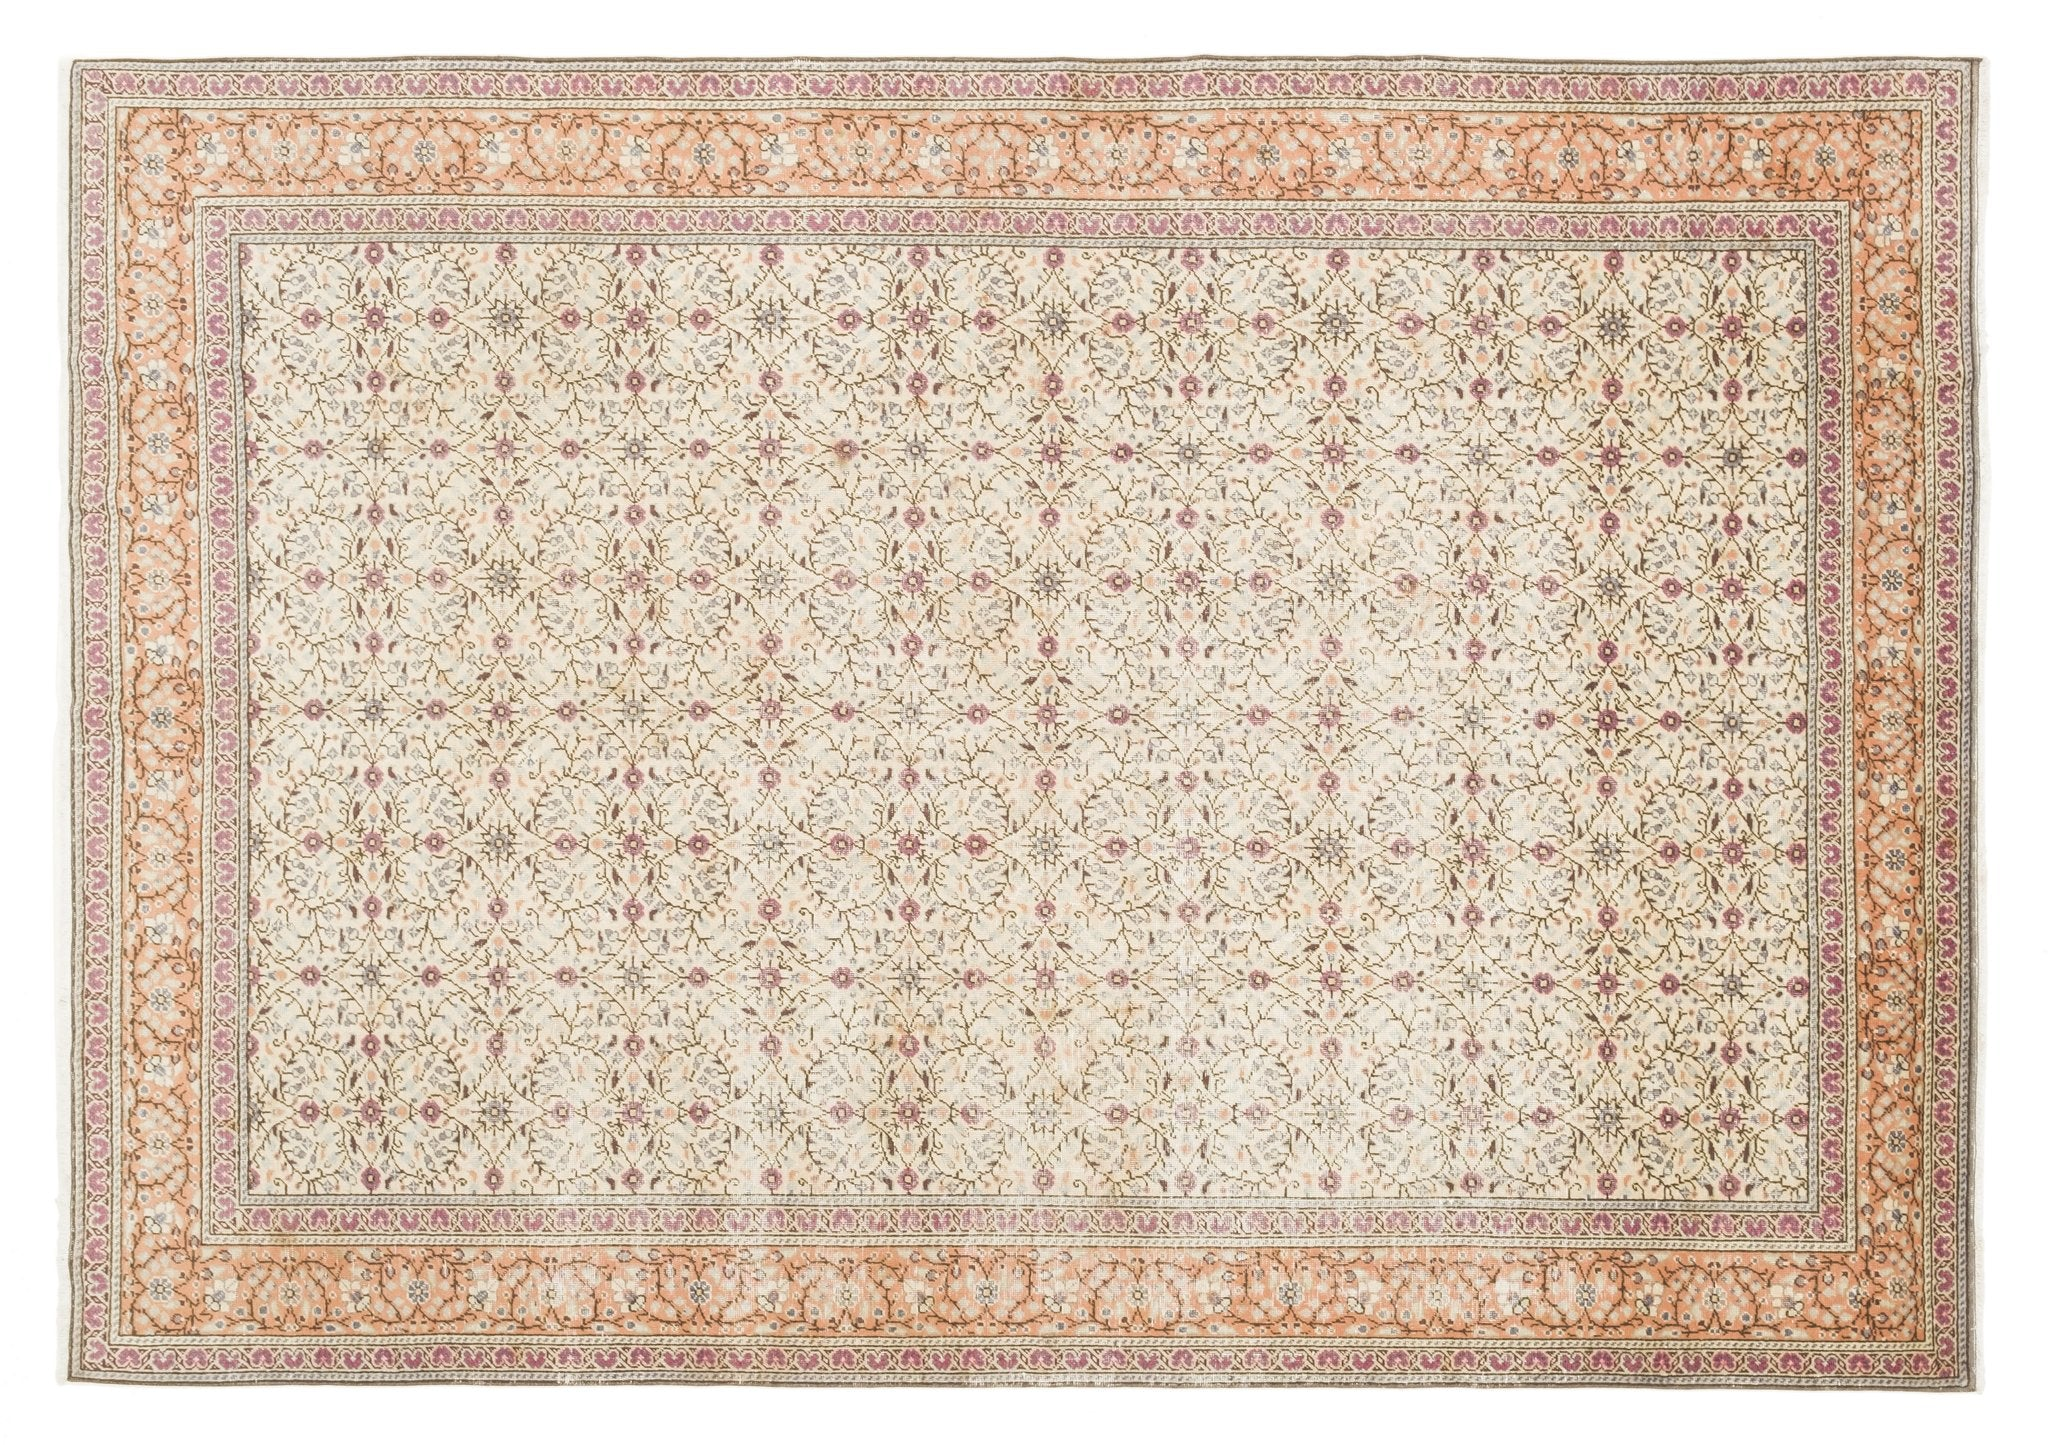 Vintage Turkish Rug Cal